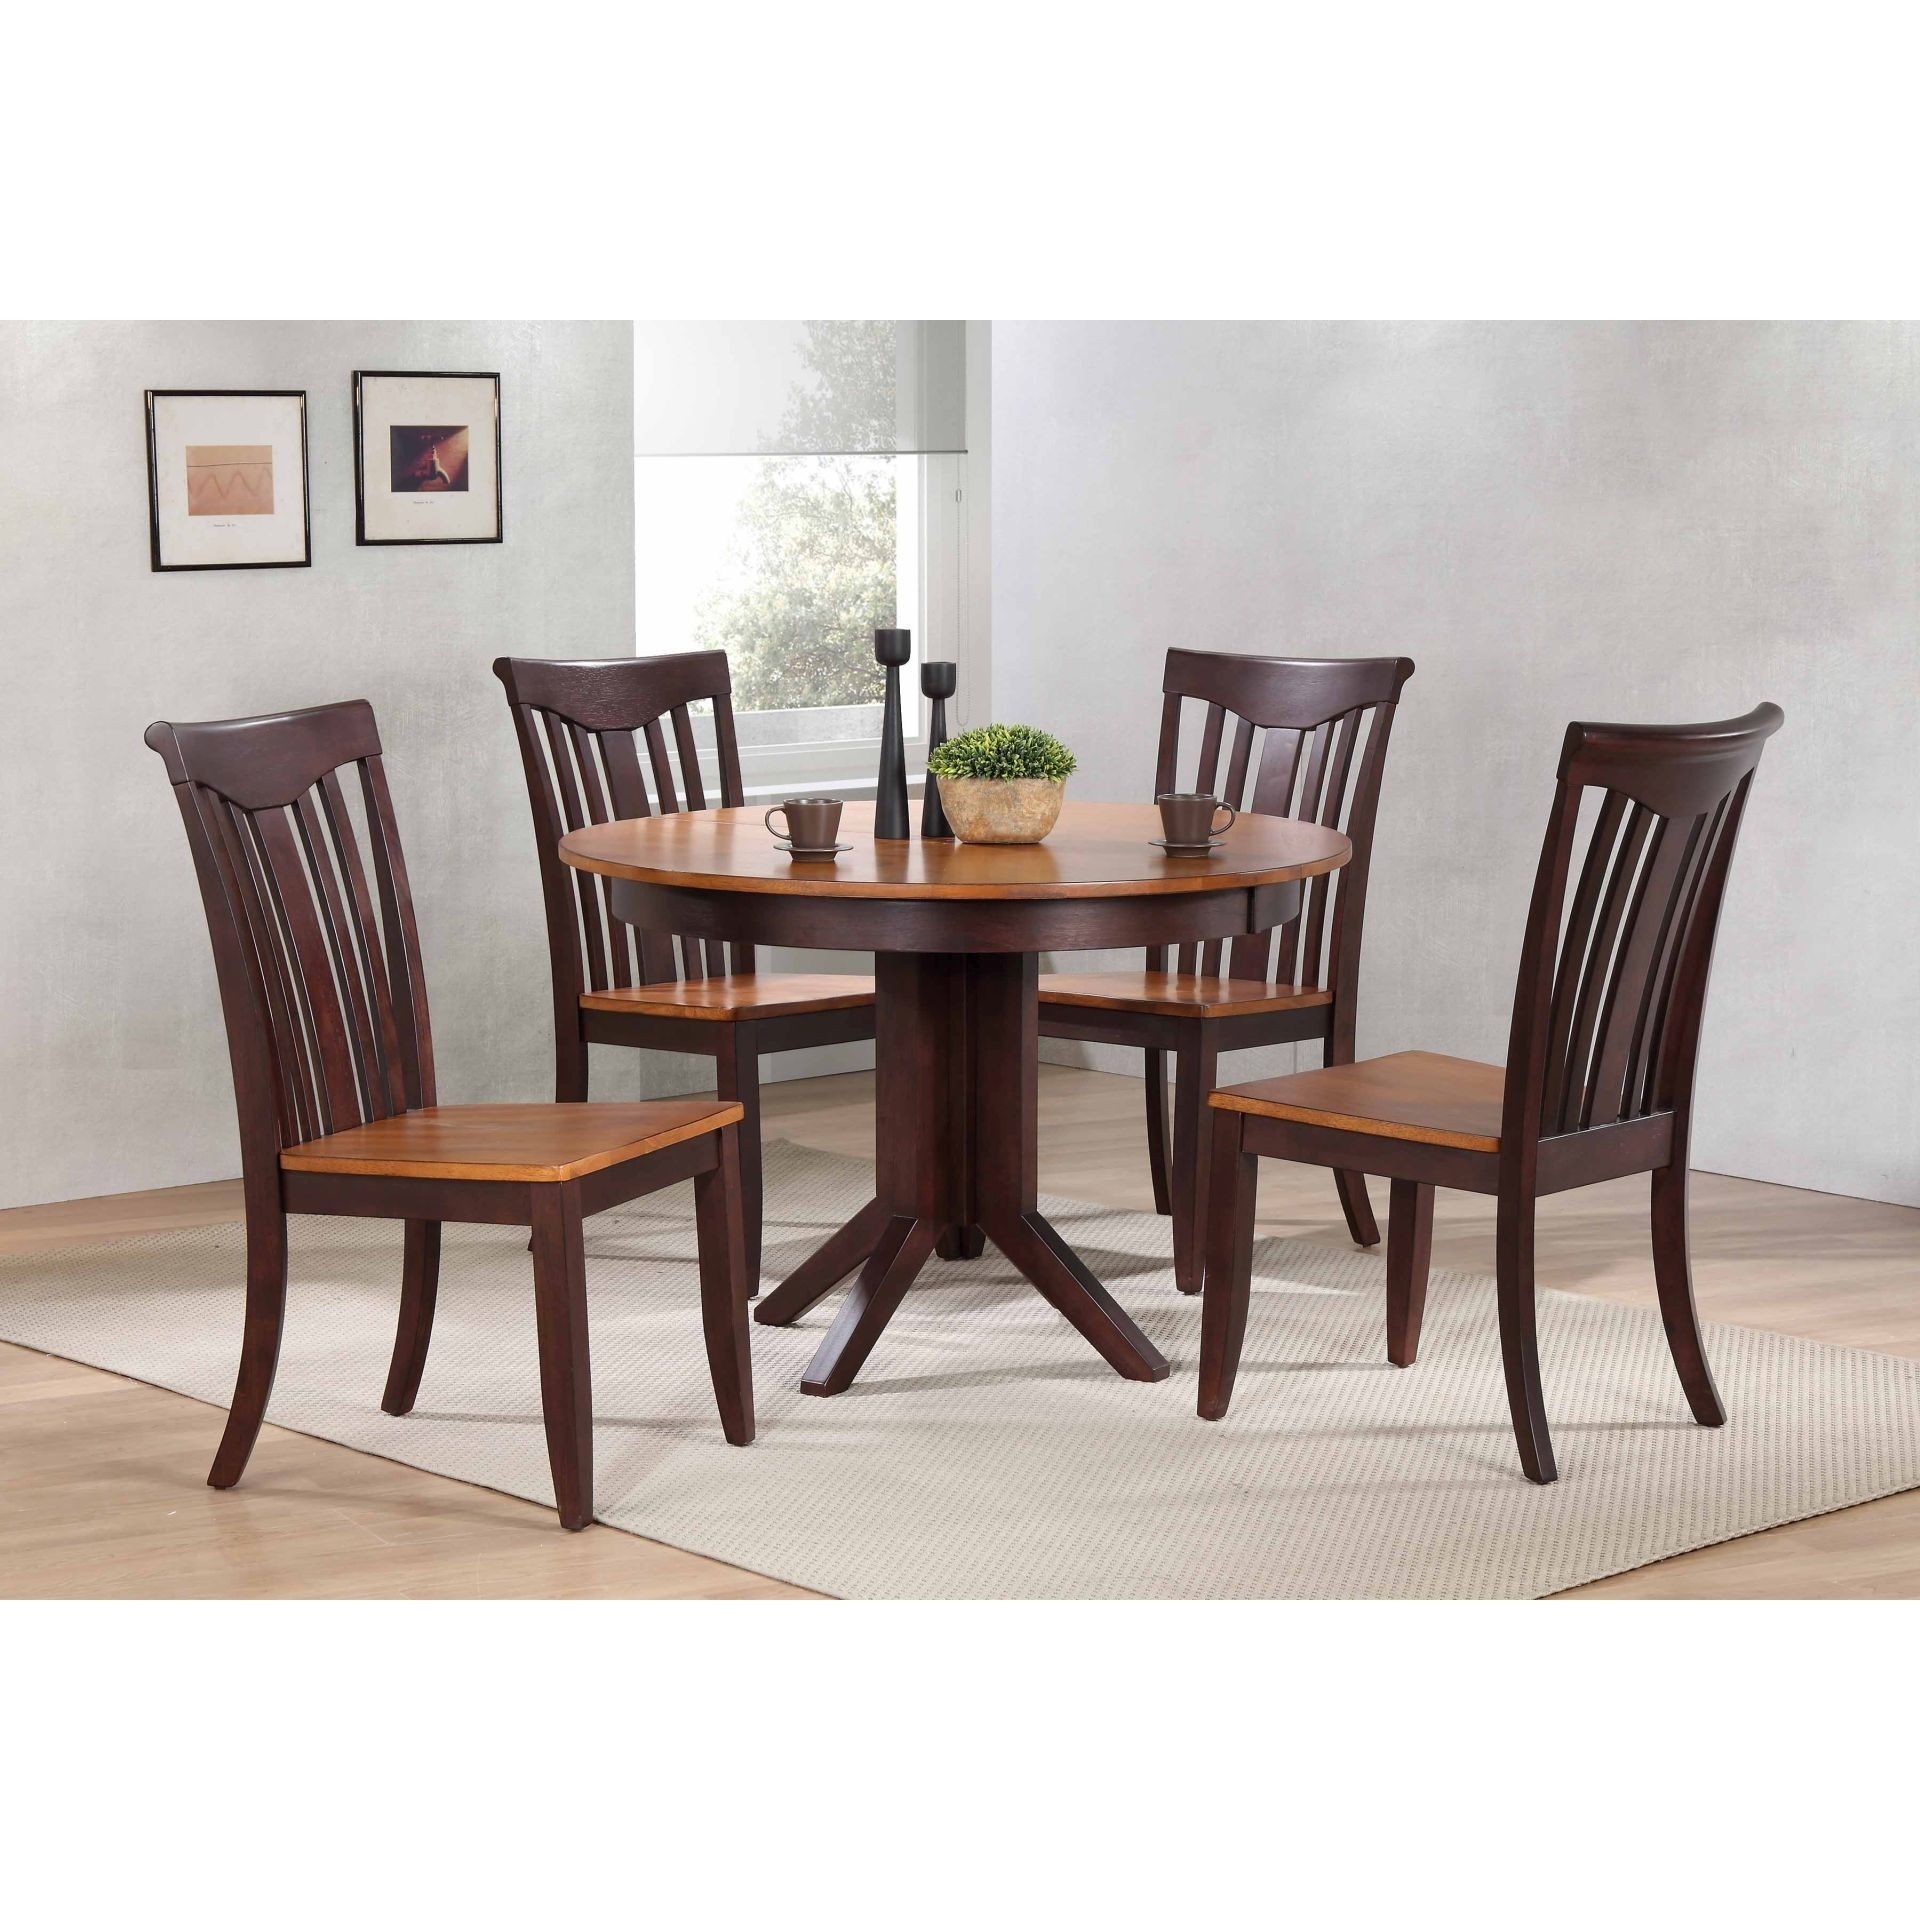 """Shop Iconic Furniture Company 45""""x45""""x63"""" Contemporary Whiskey/mocha For Most Up To Date Caden 6 Piece Dining Sets With Upholstered Side Chair (View 16 of 20)"""